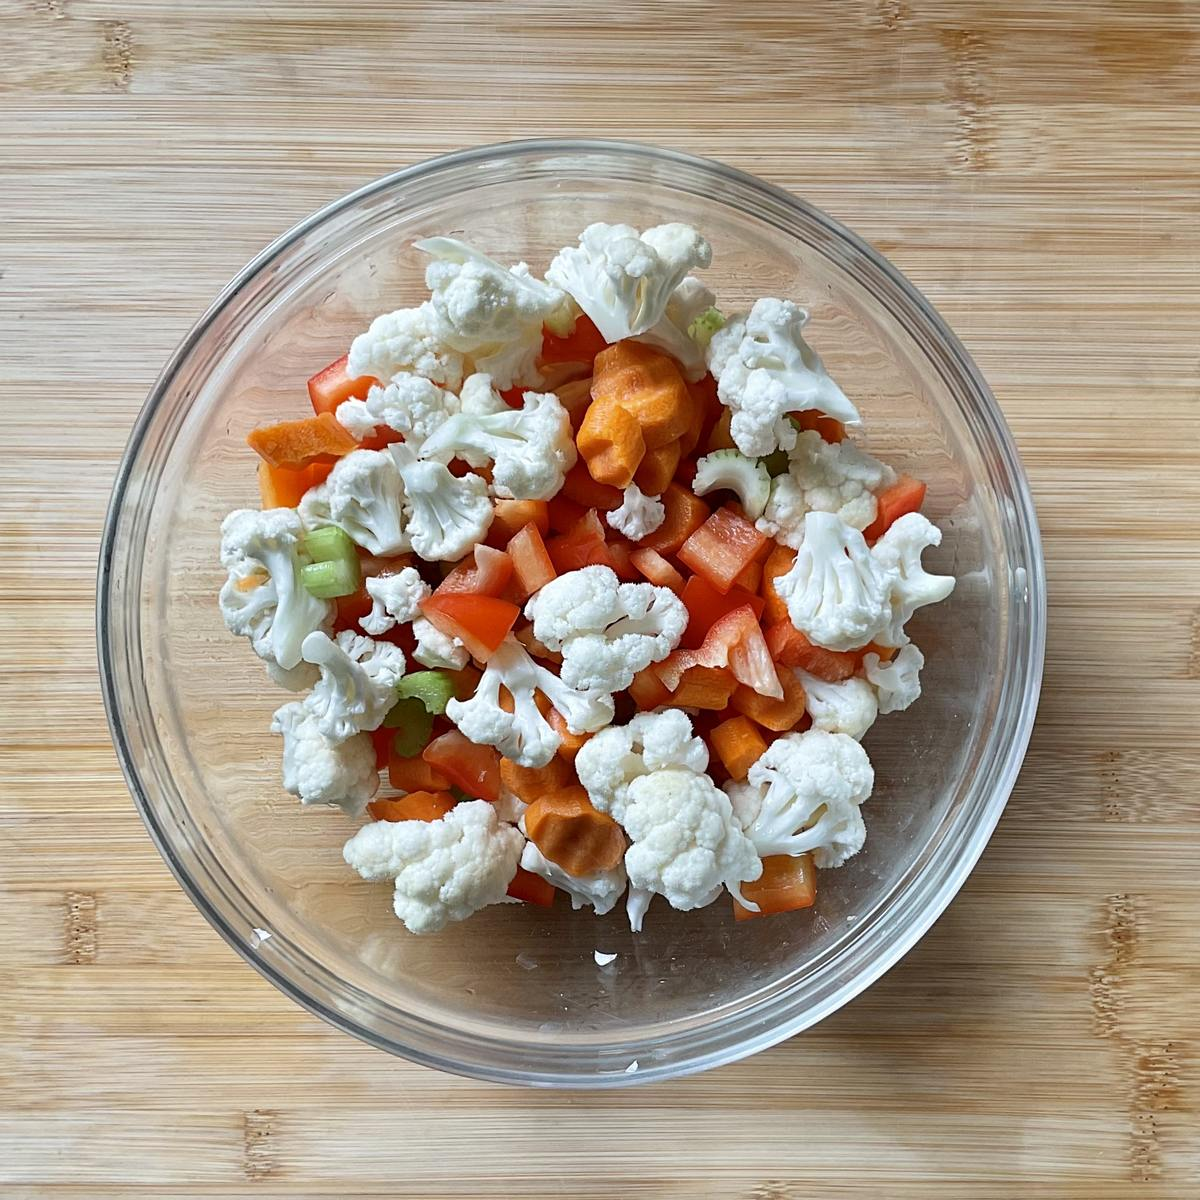 Cut vegetables in a bowl.